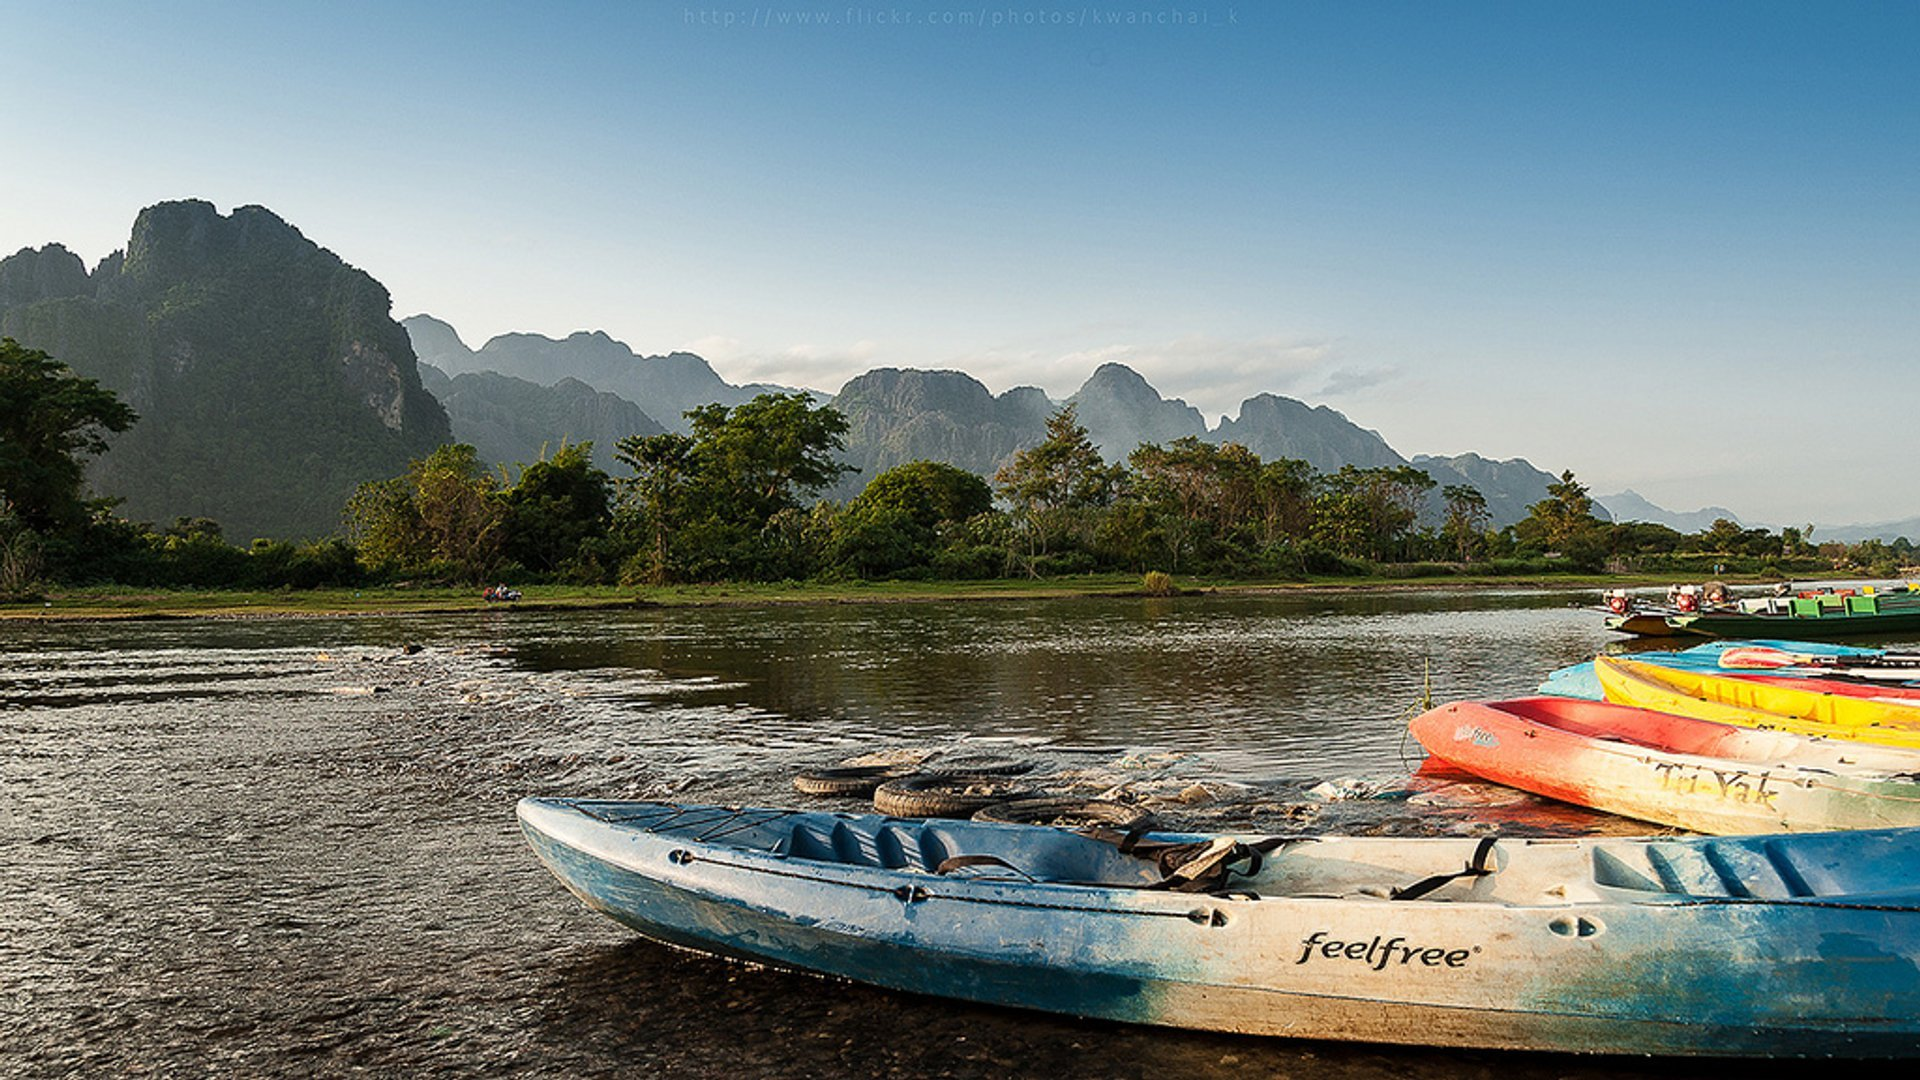 Kayaking in Laos - Best Season